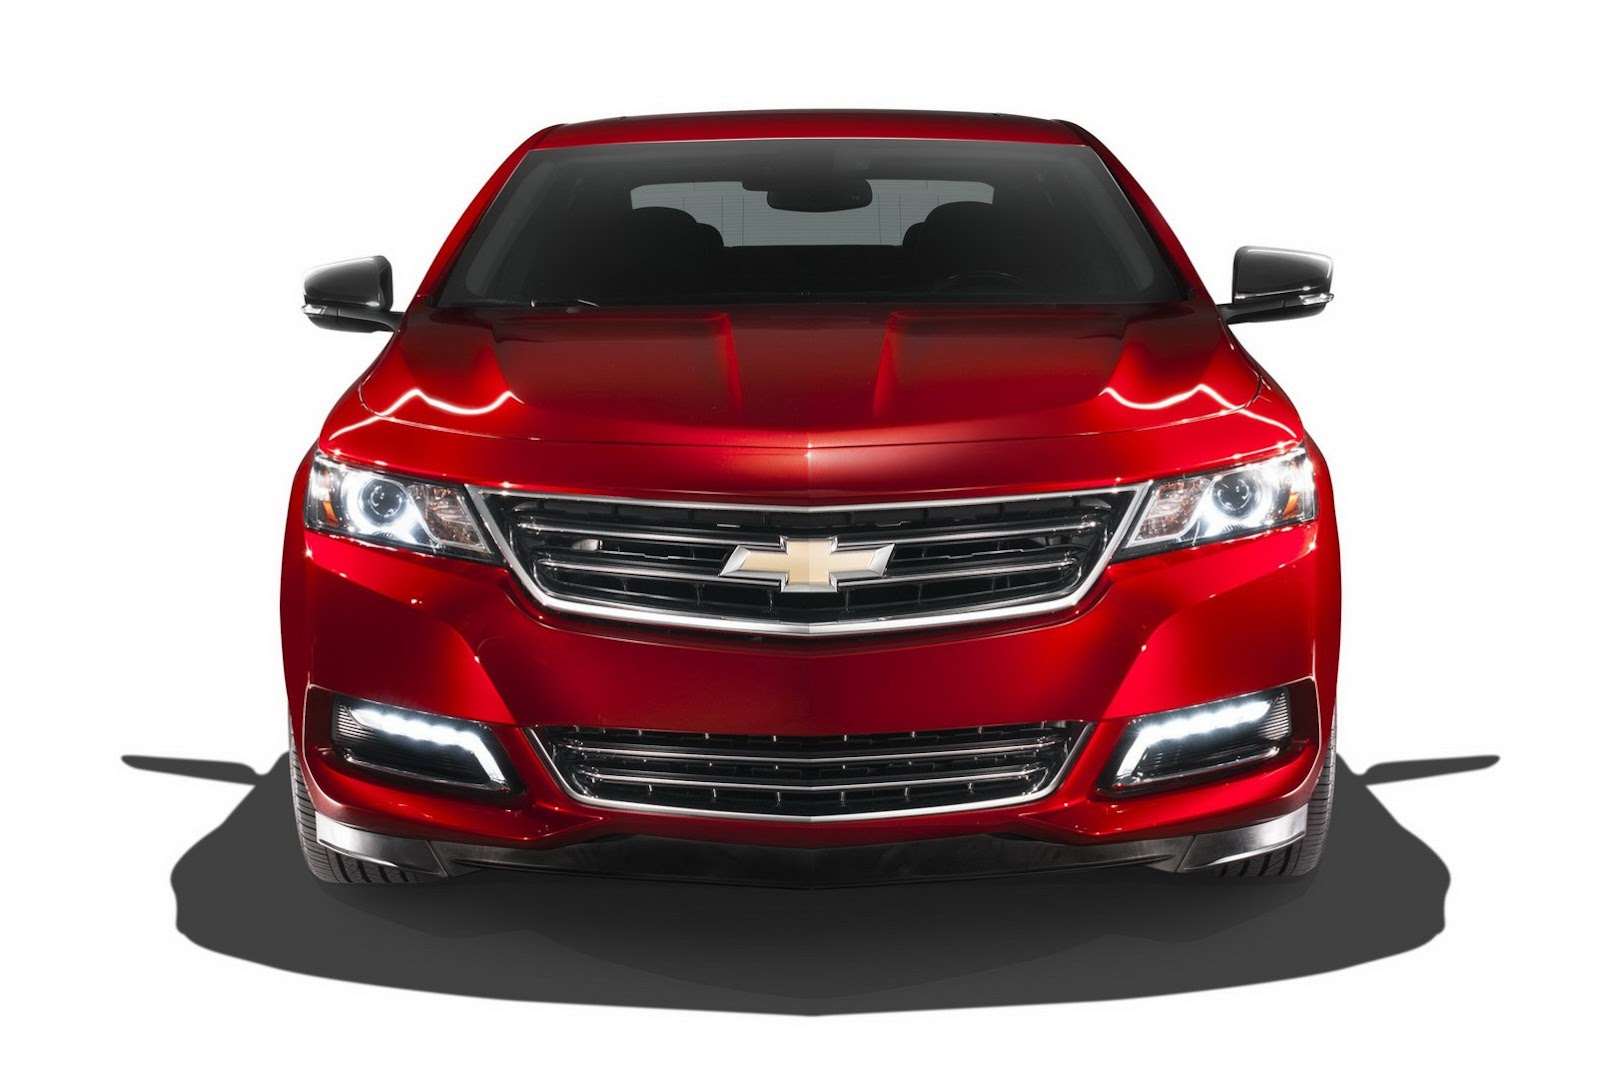 2014 Chevrolet Impala Prices to Start from $27,535, Available with 4